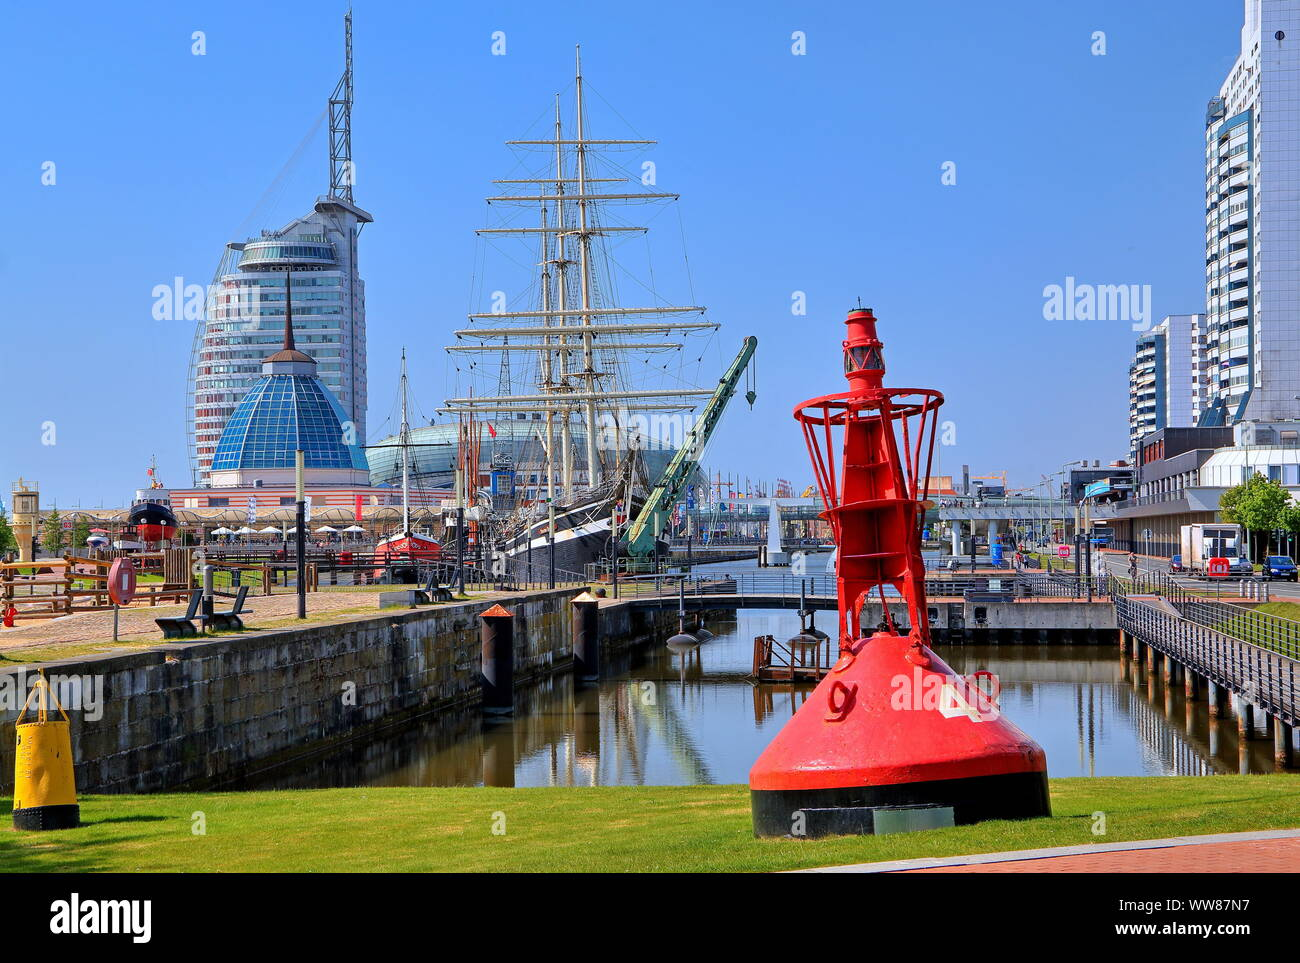 Seamark, red buoy at the old harbour with sailing ship Seute Deern, Bremerhaven, Weser estuary, Bremen state, North Germany, Germany Stock Photo